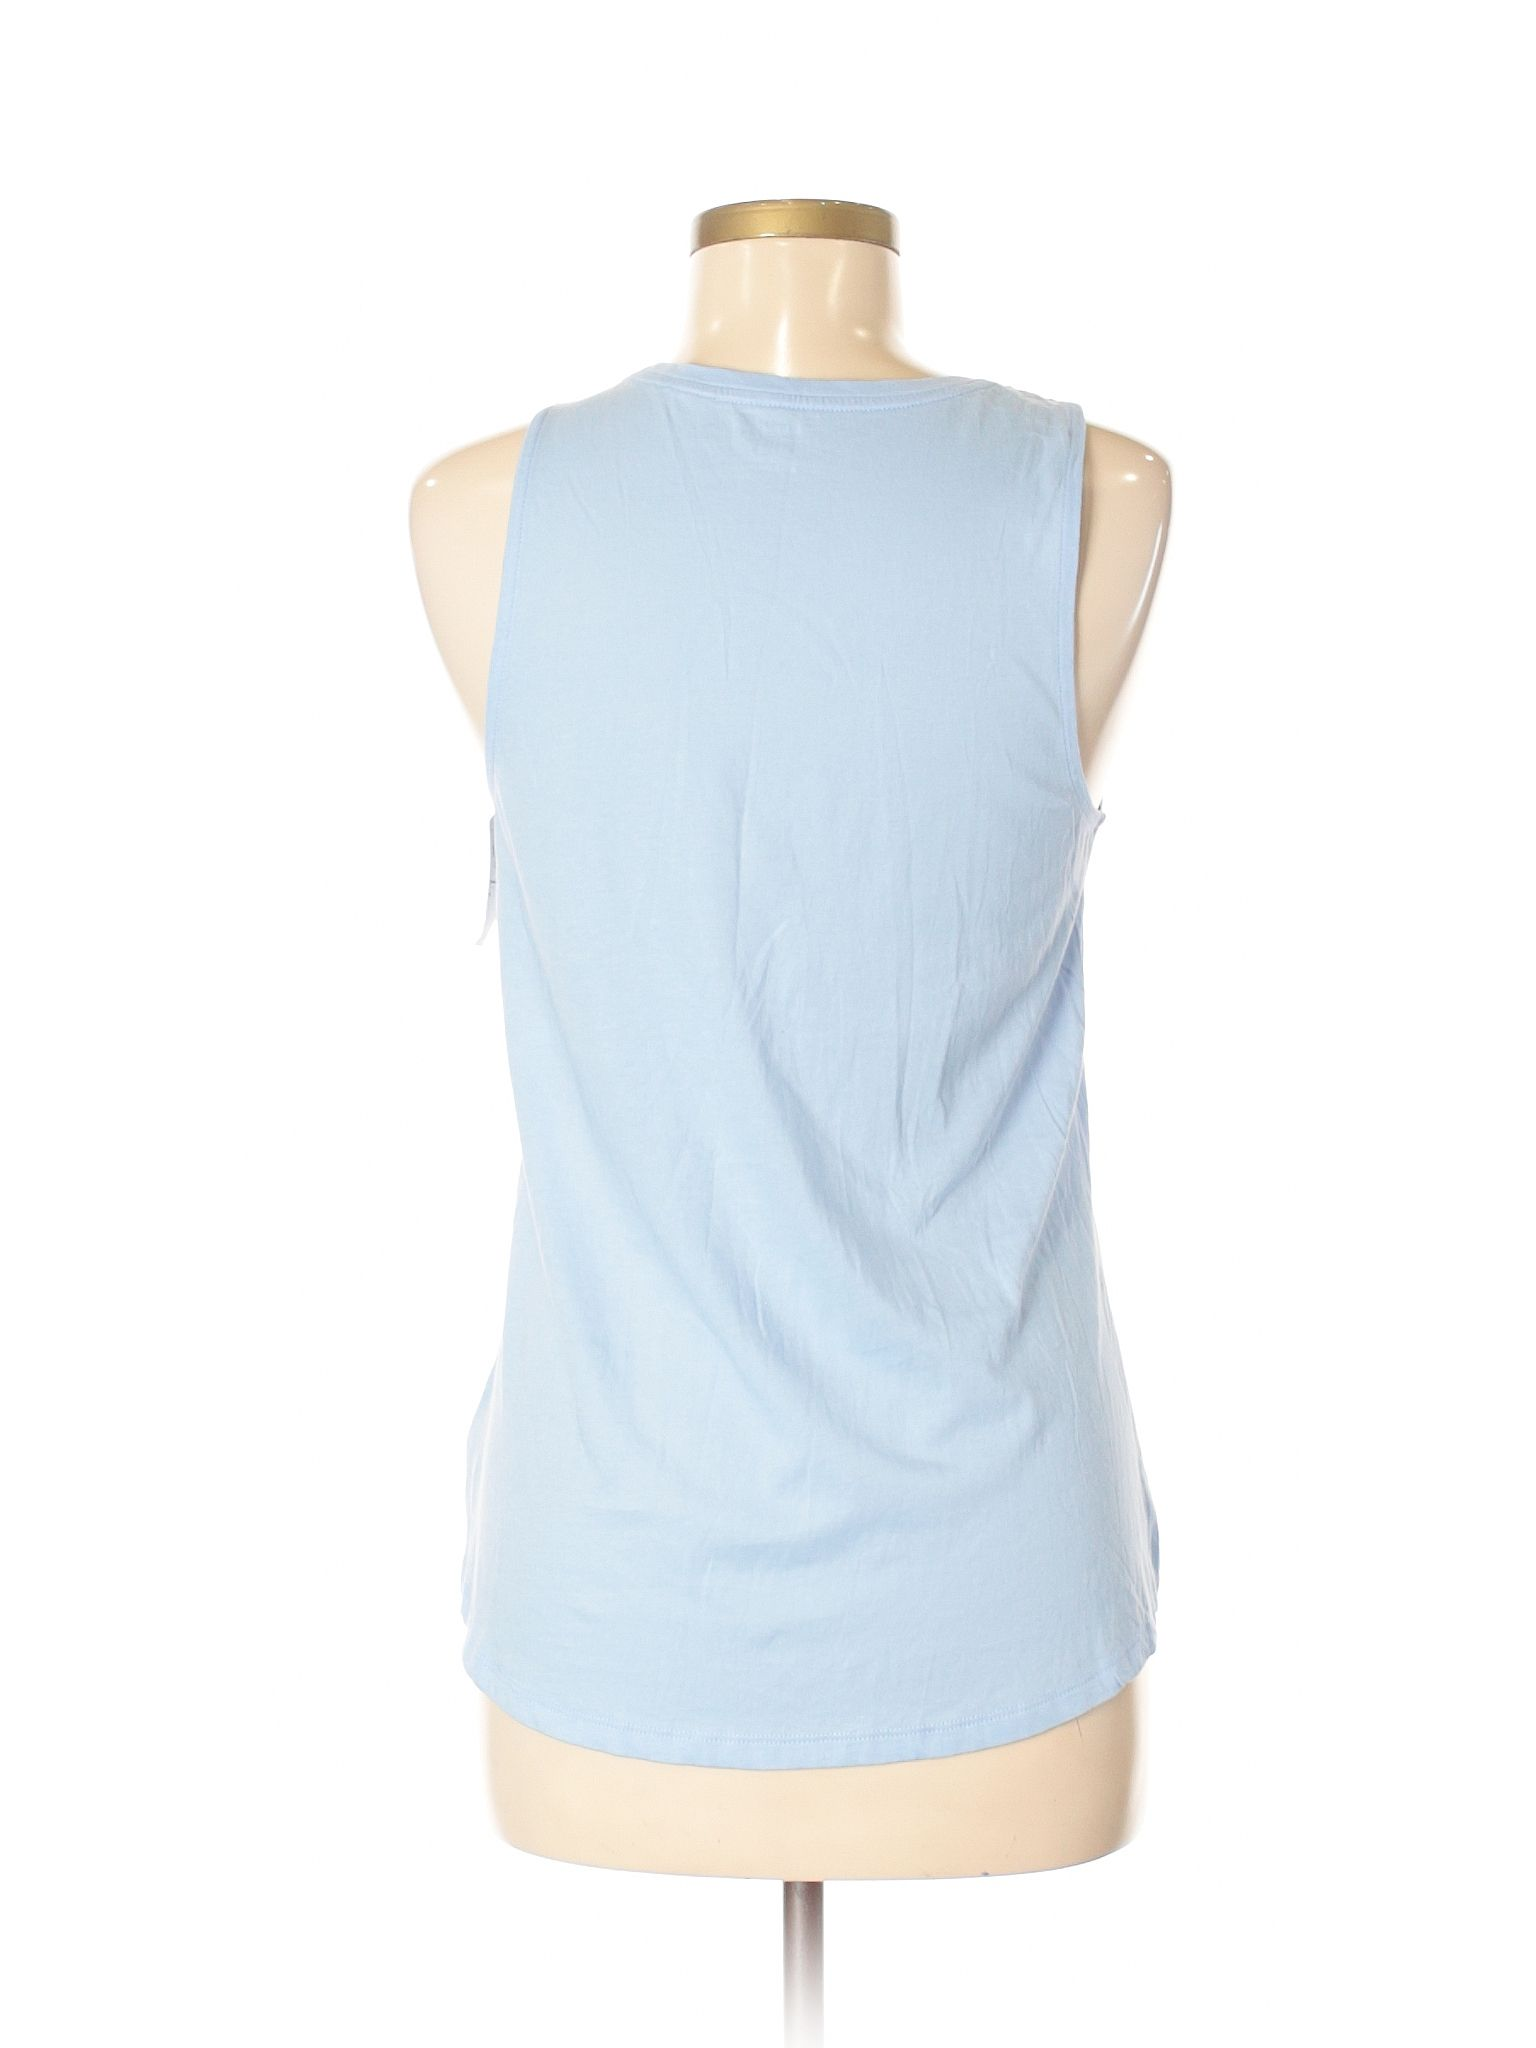 Old Navy Tank Top Size 800 Light Blue Womens Tops